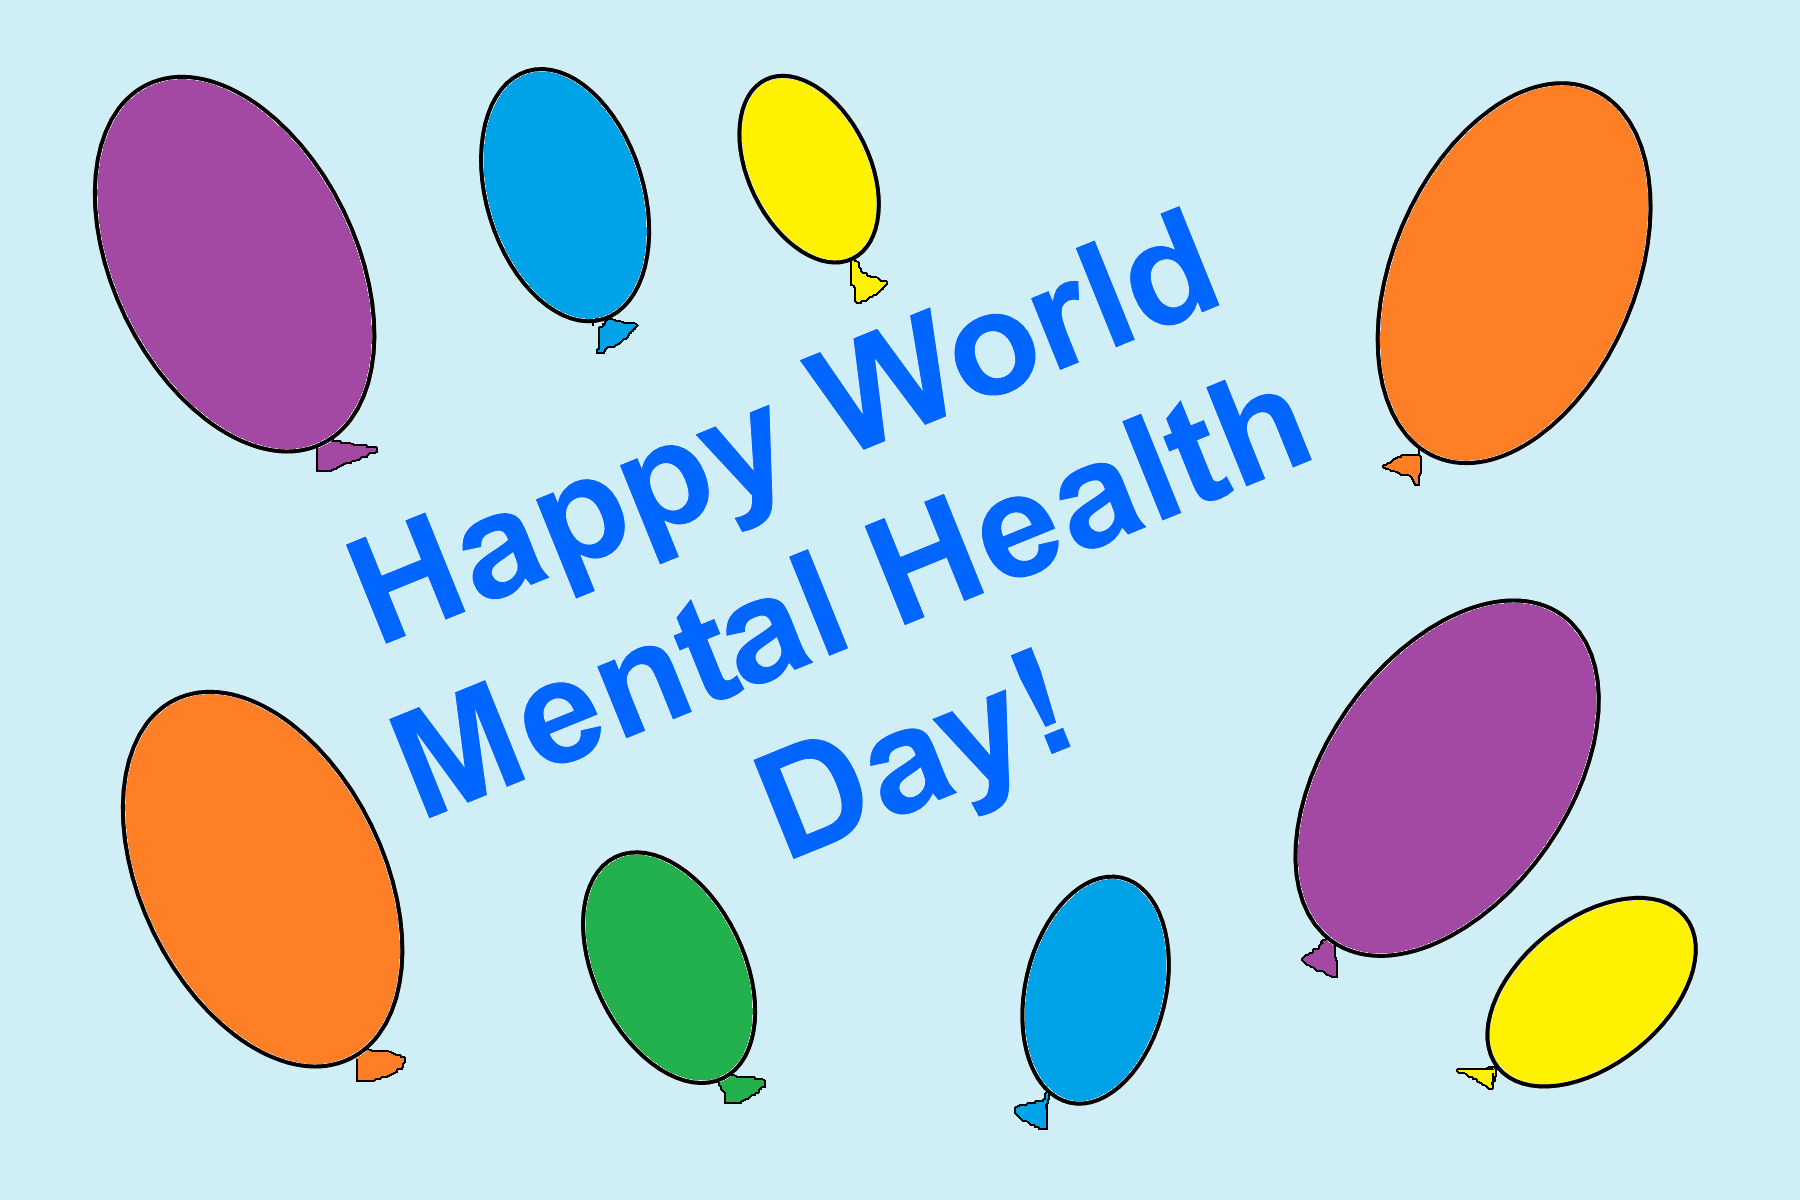 Happy World Mental Health Day Colorful Balloons